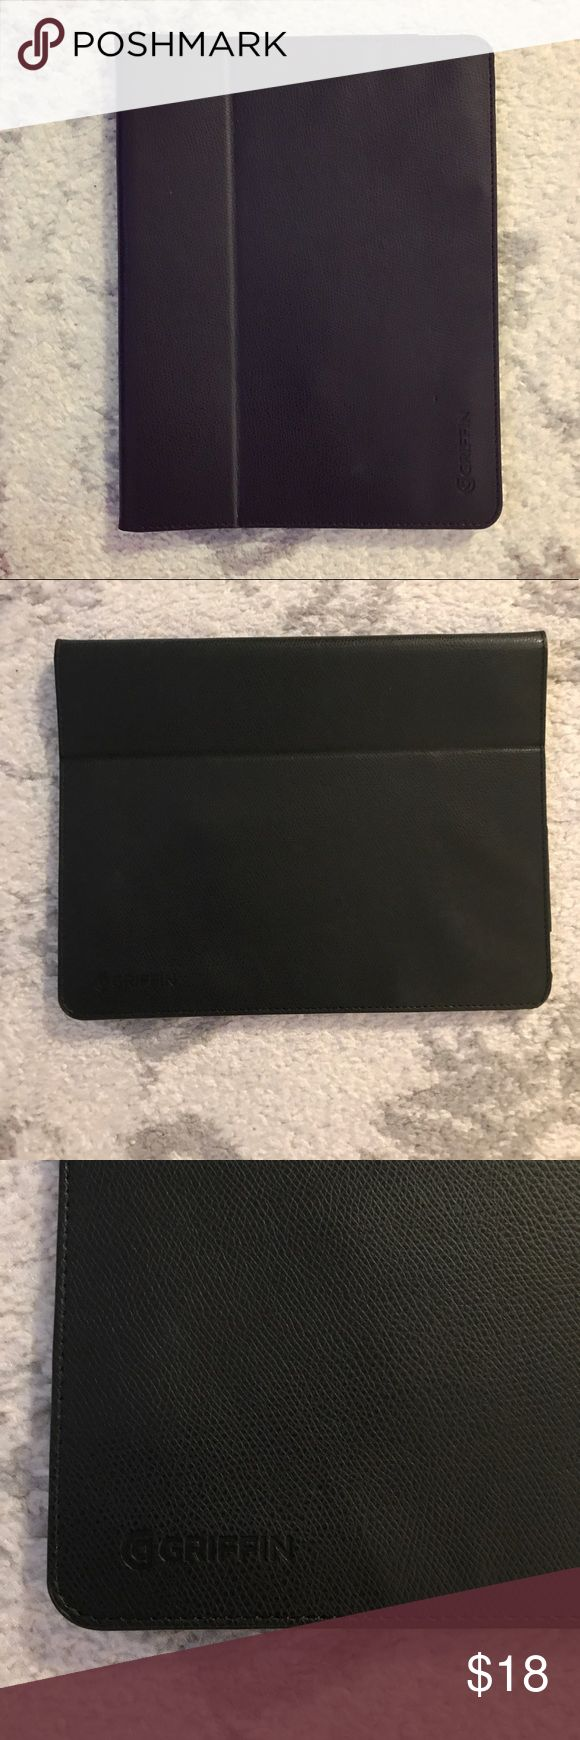 Black leather Griffin iPad tablet case Black leather iPad tablet case from Griffin. The case measures 10 inches by 7.5 inches, and I have held an iPad Air and iPad Pro in it. Both sides of the case are sturdy, and the front side has a fold in it to make the case stand up. Underneath the iPad slot, there is an open pocket to put papers, etc. The case has been used, but is in great condition with a lot of life left in it! This is a quality case! Griffin Accessories Tablet Cases